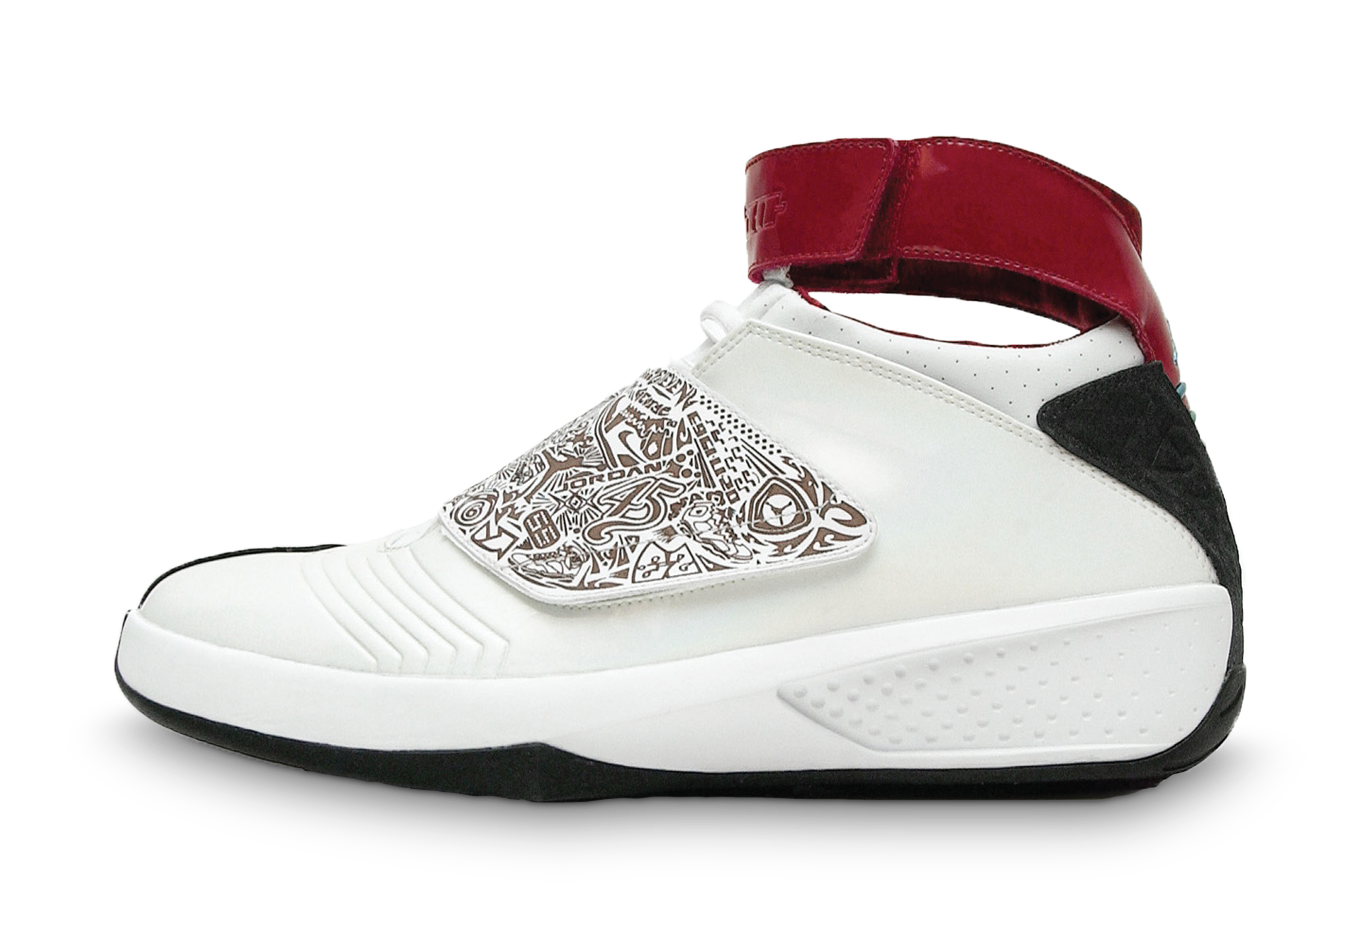 38c1a8e08567 Every Style of Air Jordans